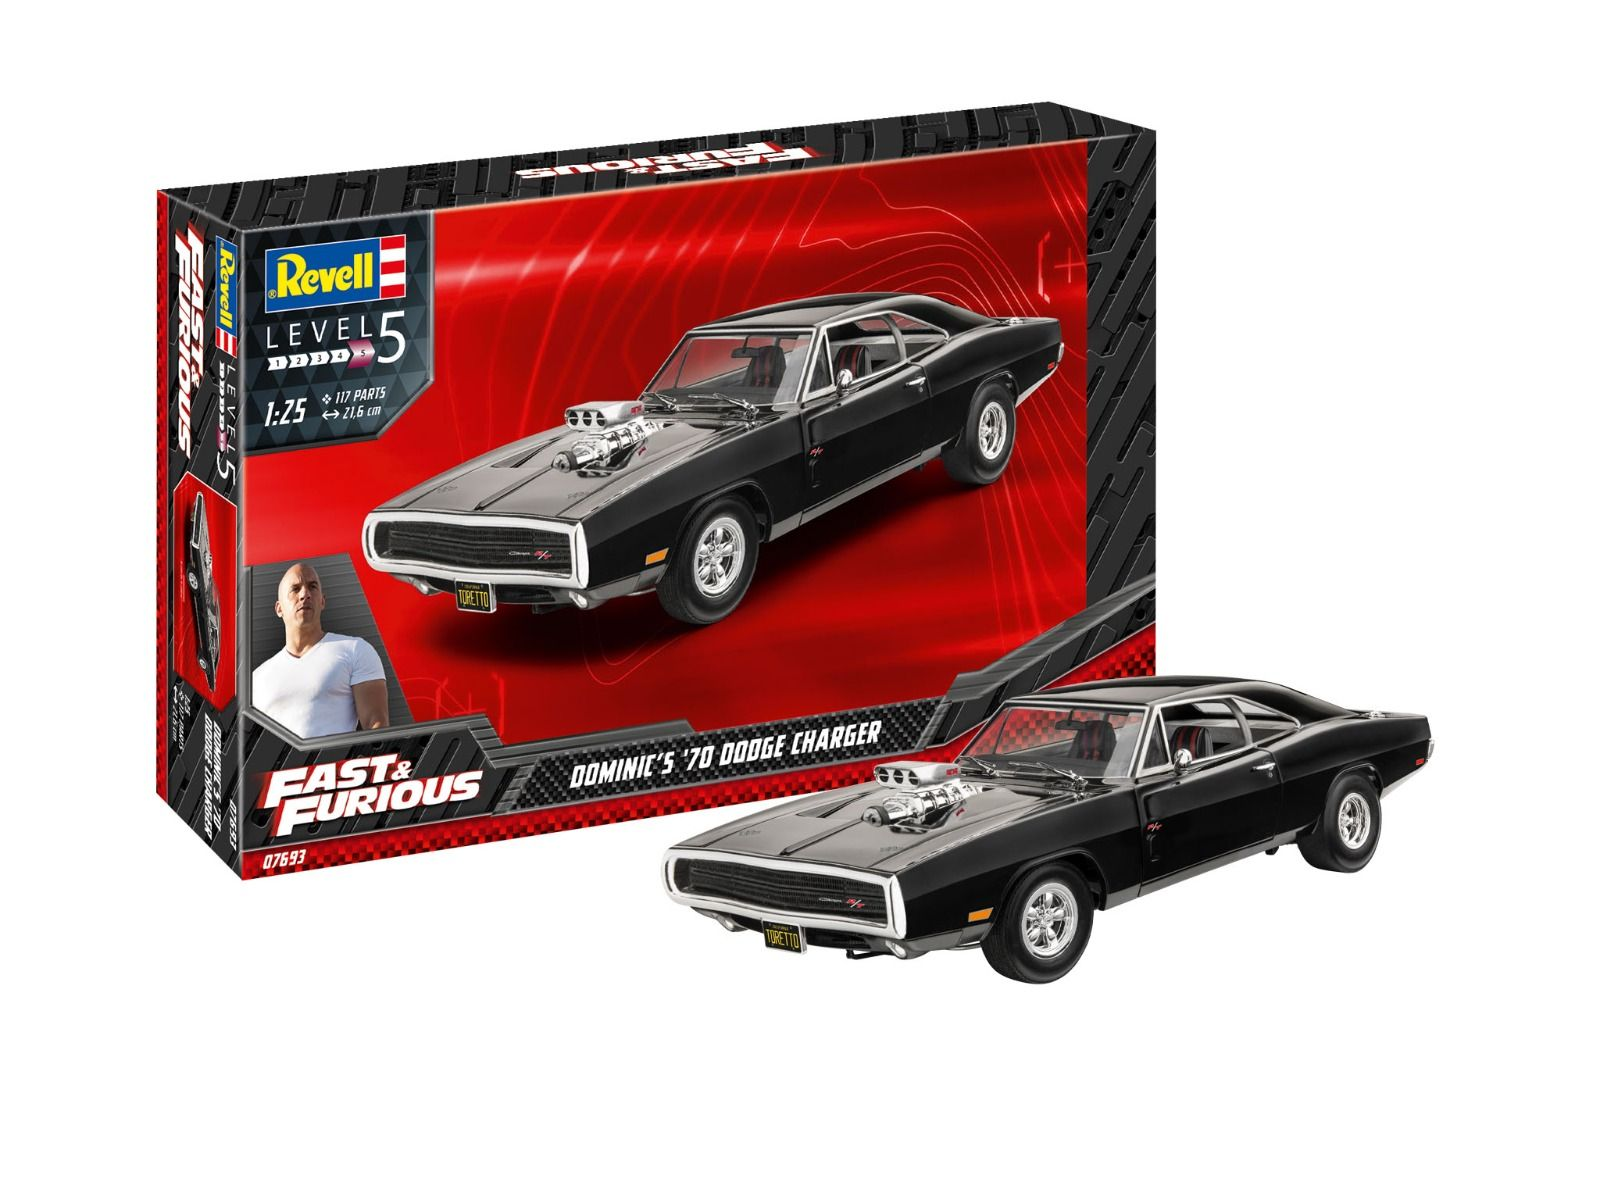 Revell Fast & Furious - Dominics 1970 Dodge Charger